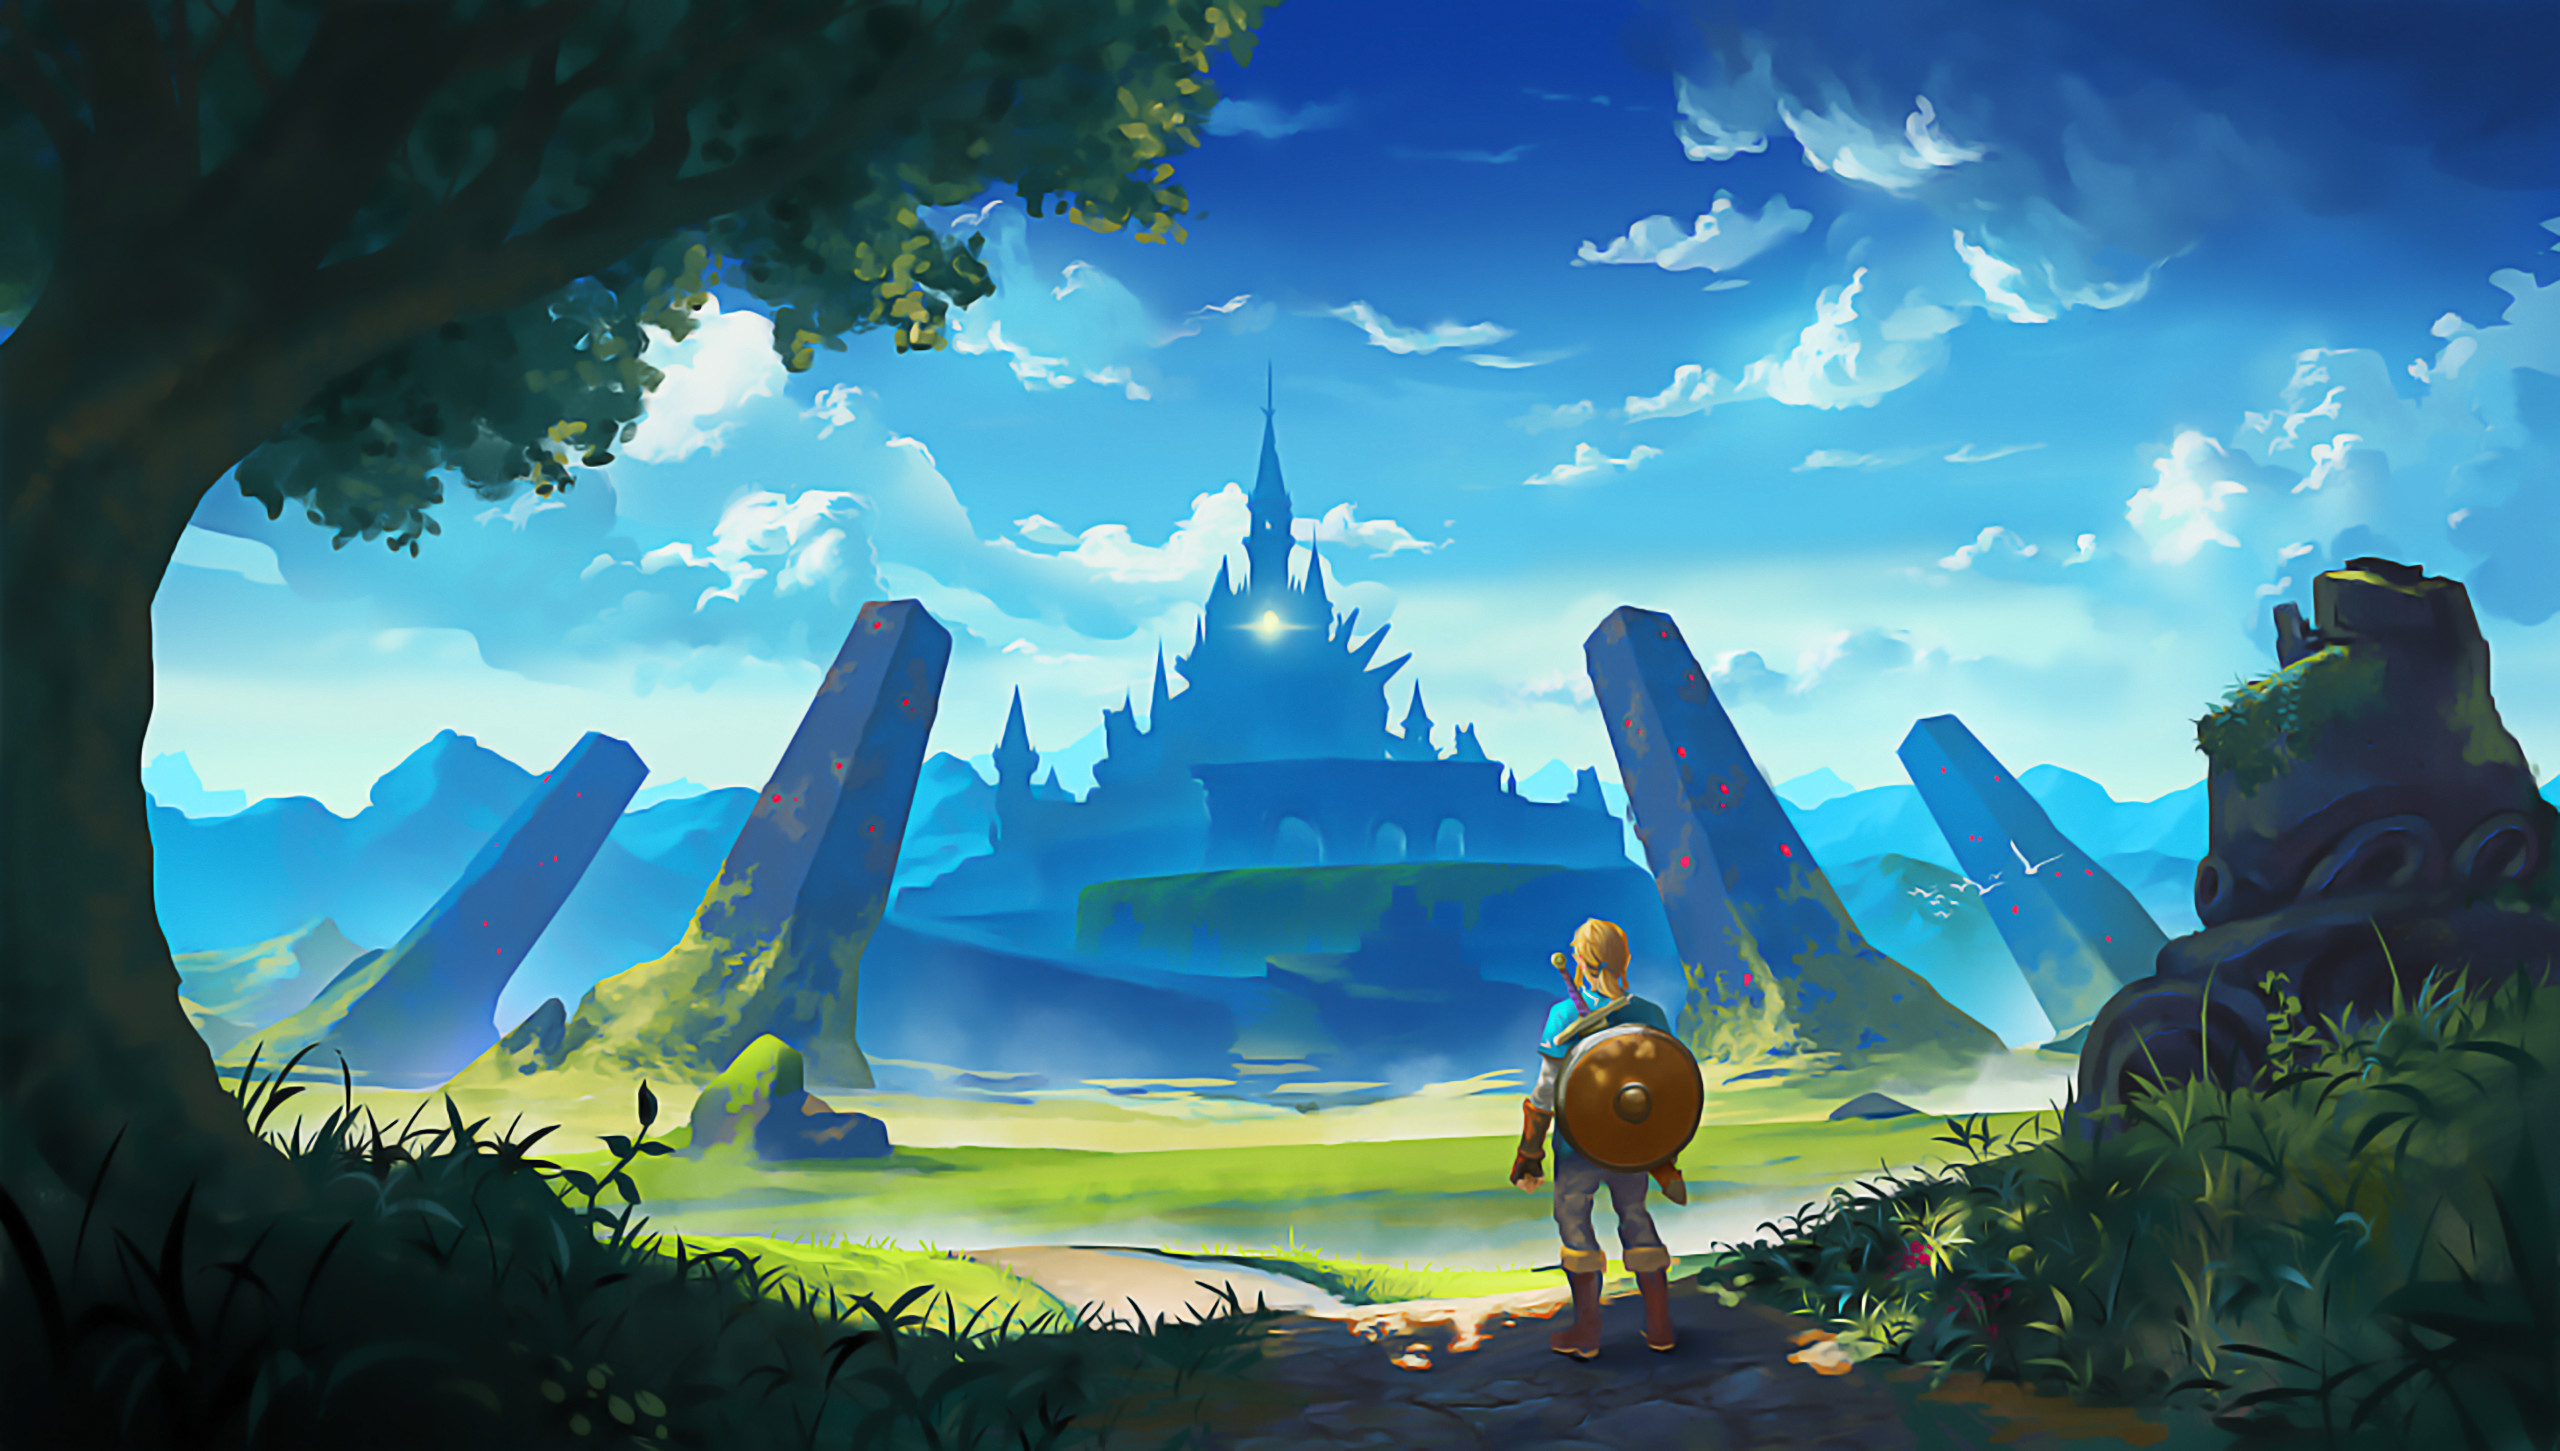 Legend Of Zelda Wallpaper 1920x1080 87 Images